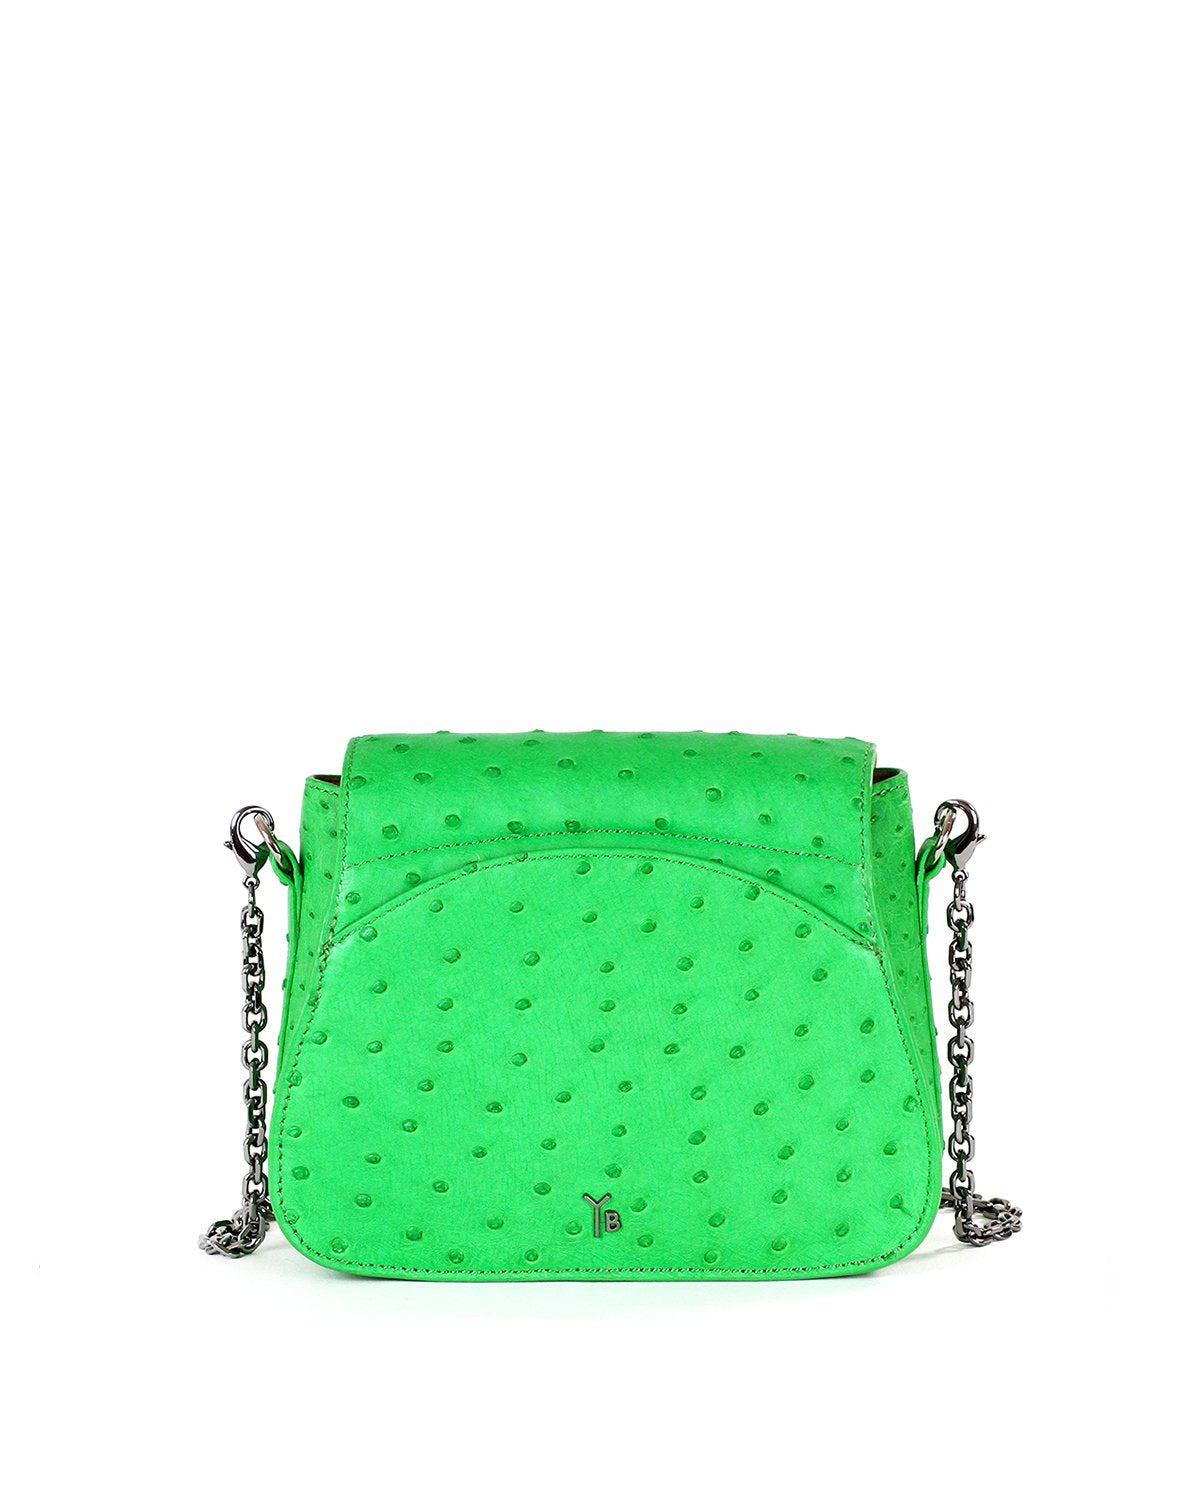 Genuine Real Ostrich Sustainable Crossbody Bag Handbag Bright Green Yara Bashoor Shoulder Chain Back Image